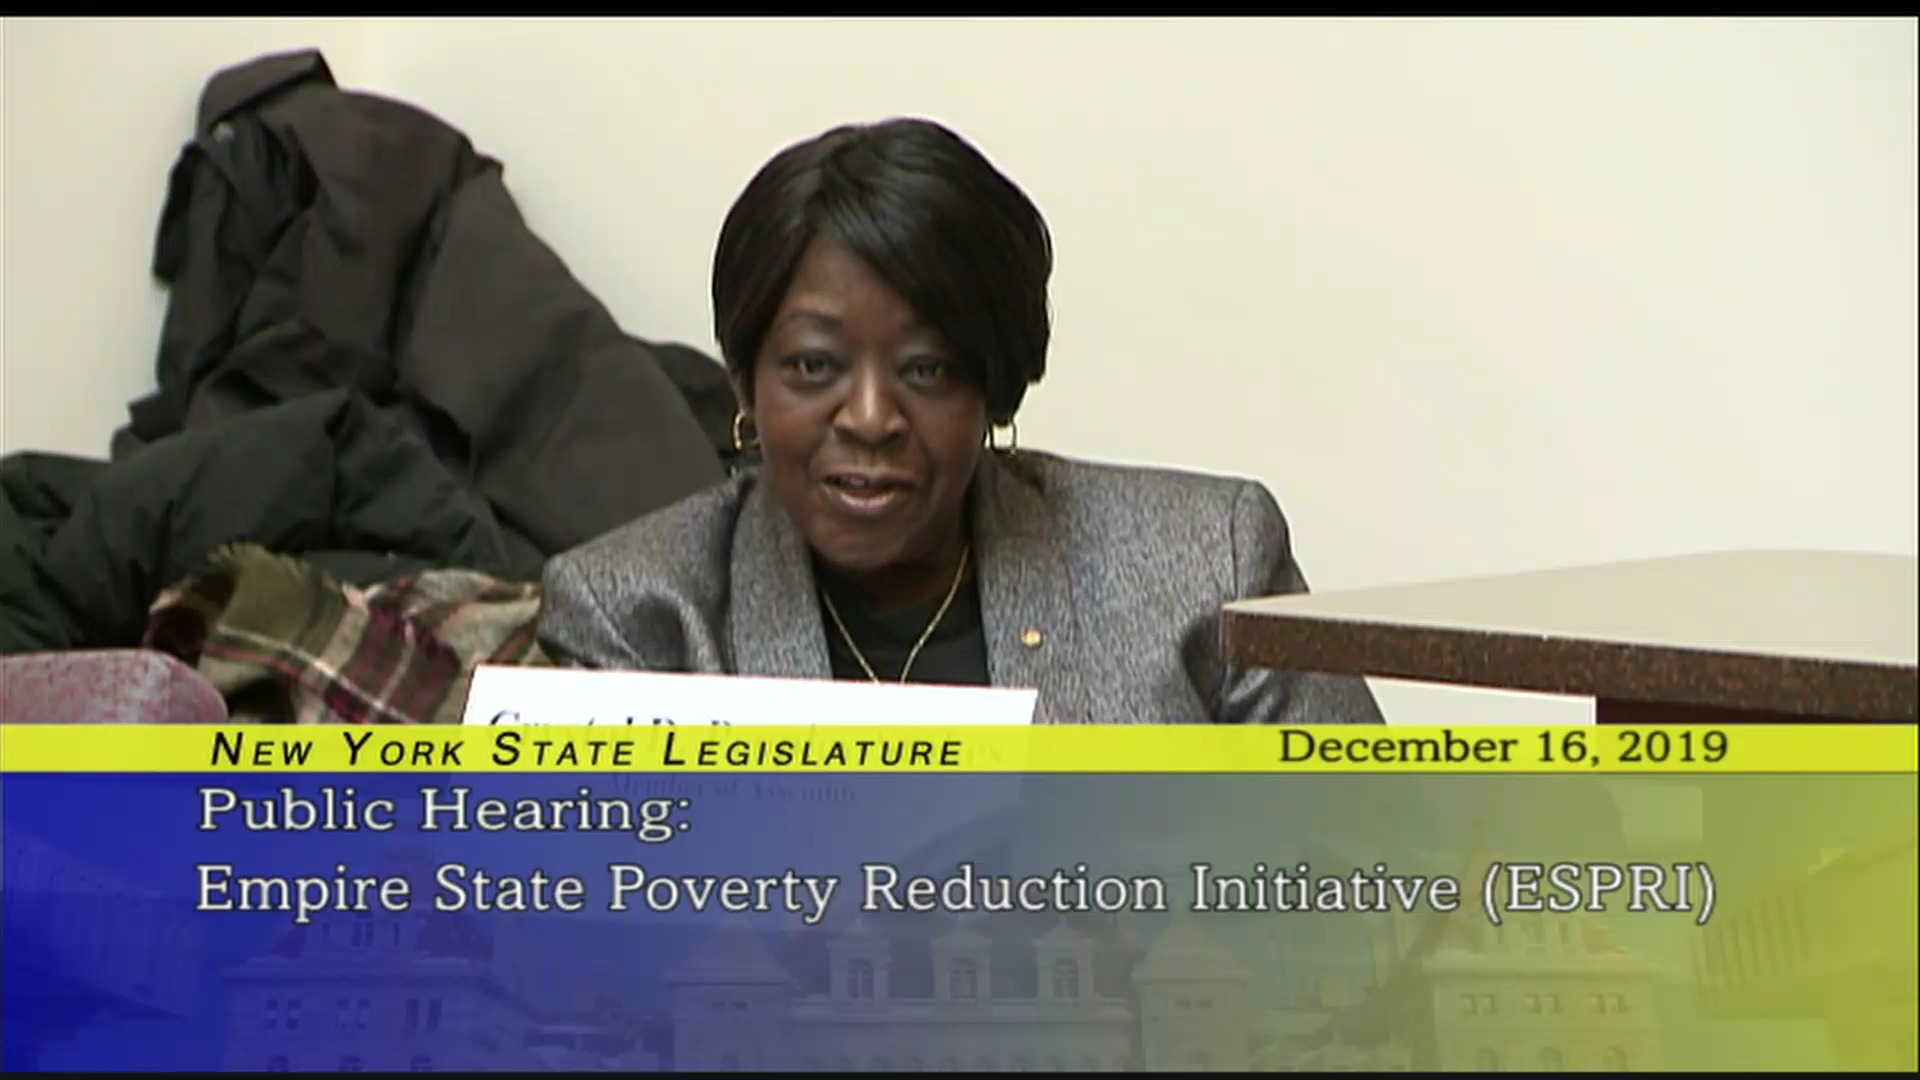 Public Hearing on the Empire State Poverty Reduction Initiative (1)